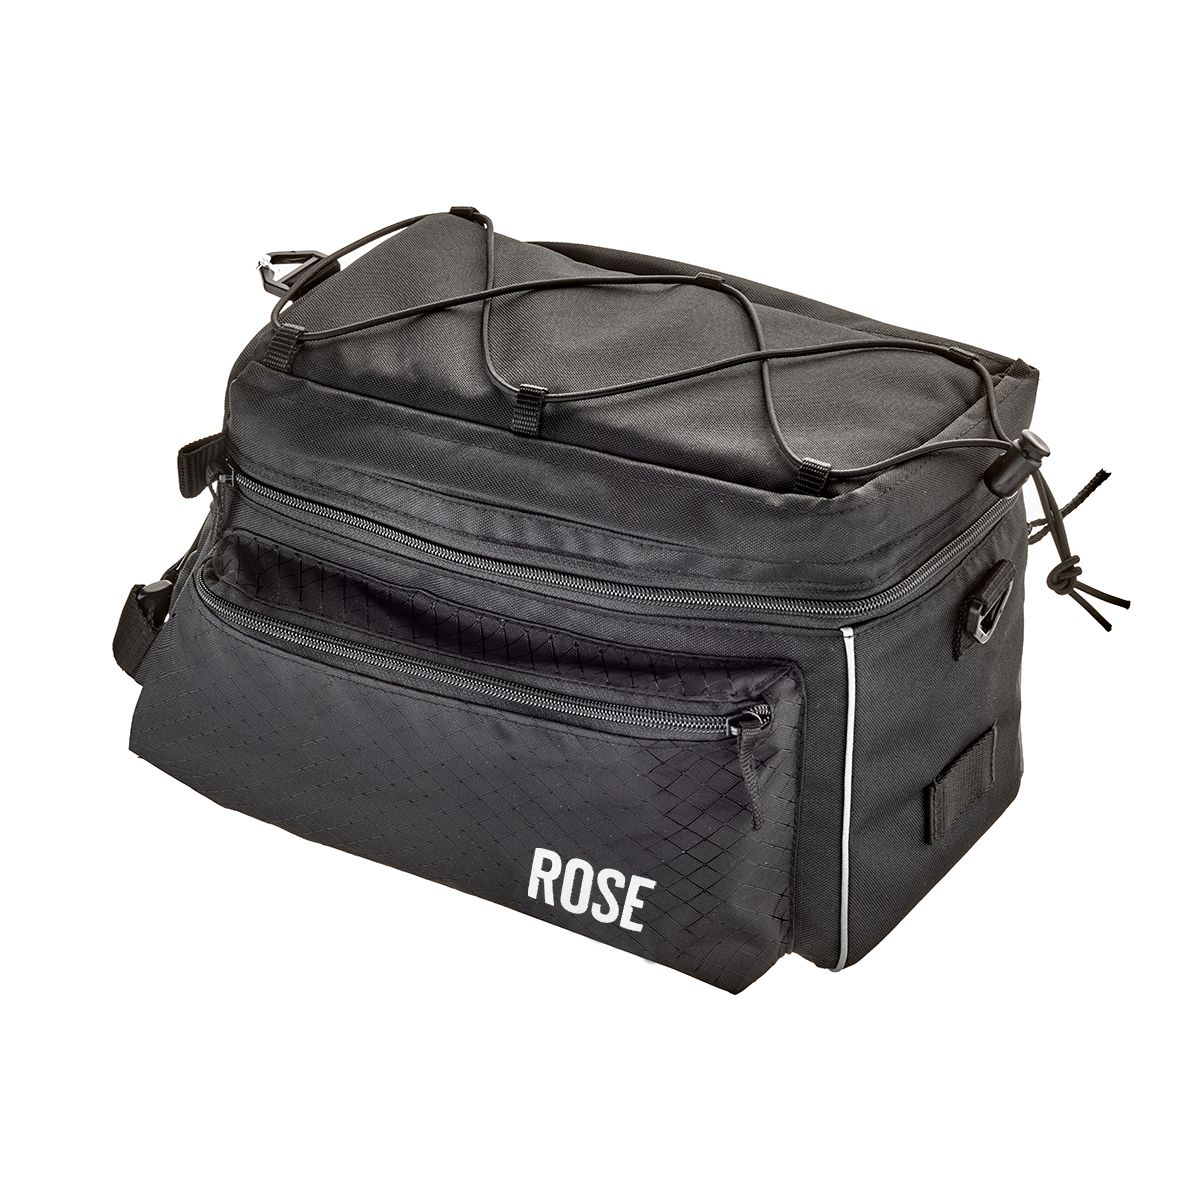 Easybag rack bag